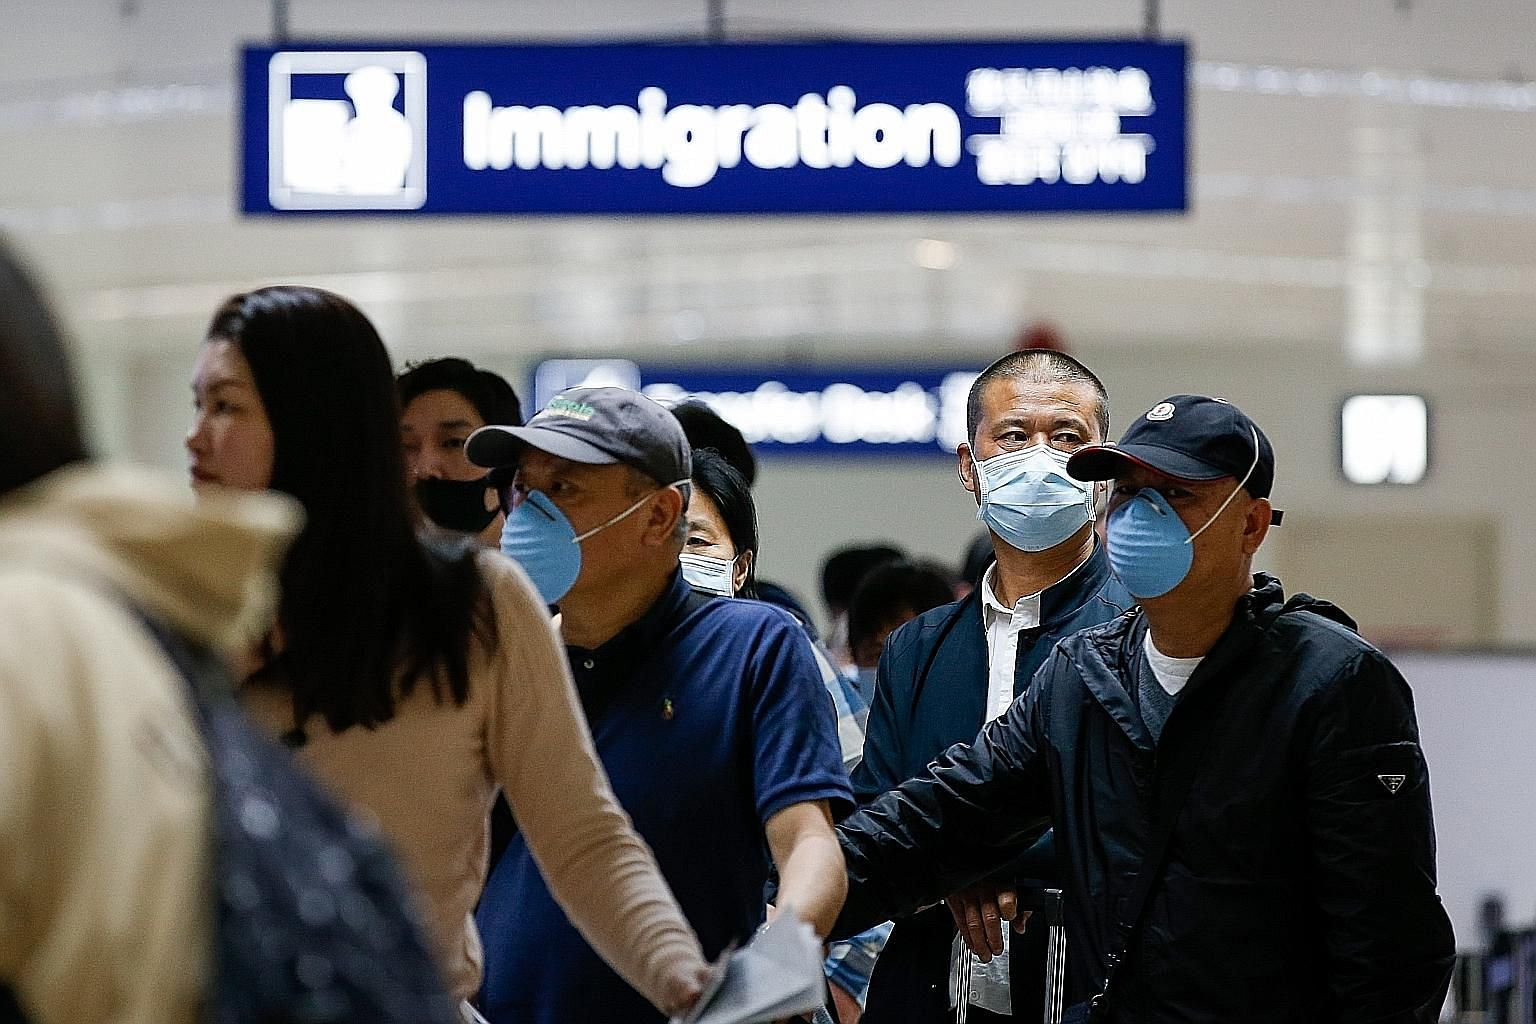 Passengers arriving from Guangzhou waiting in line at immigration at the Ninoy Aquino International Airport in Manila on Jan 22. The Philippines has cancelled direct flights to Wuhan and stopped issuing visas on arrival to Chinese nationals. Flights